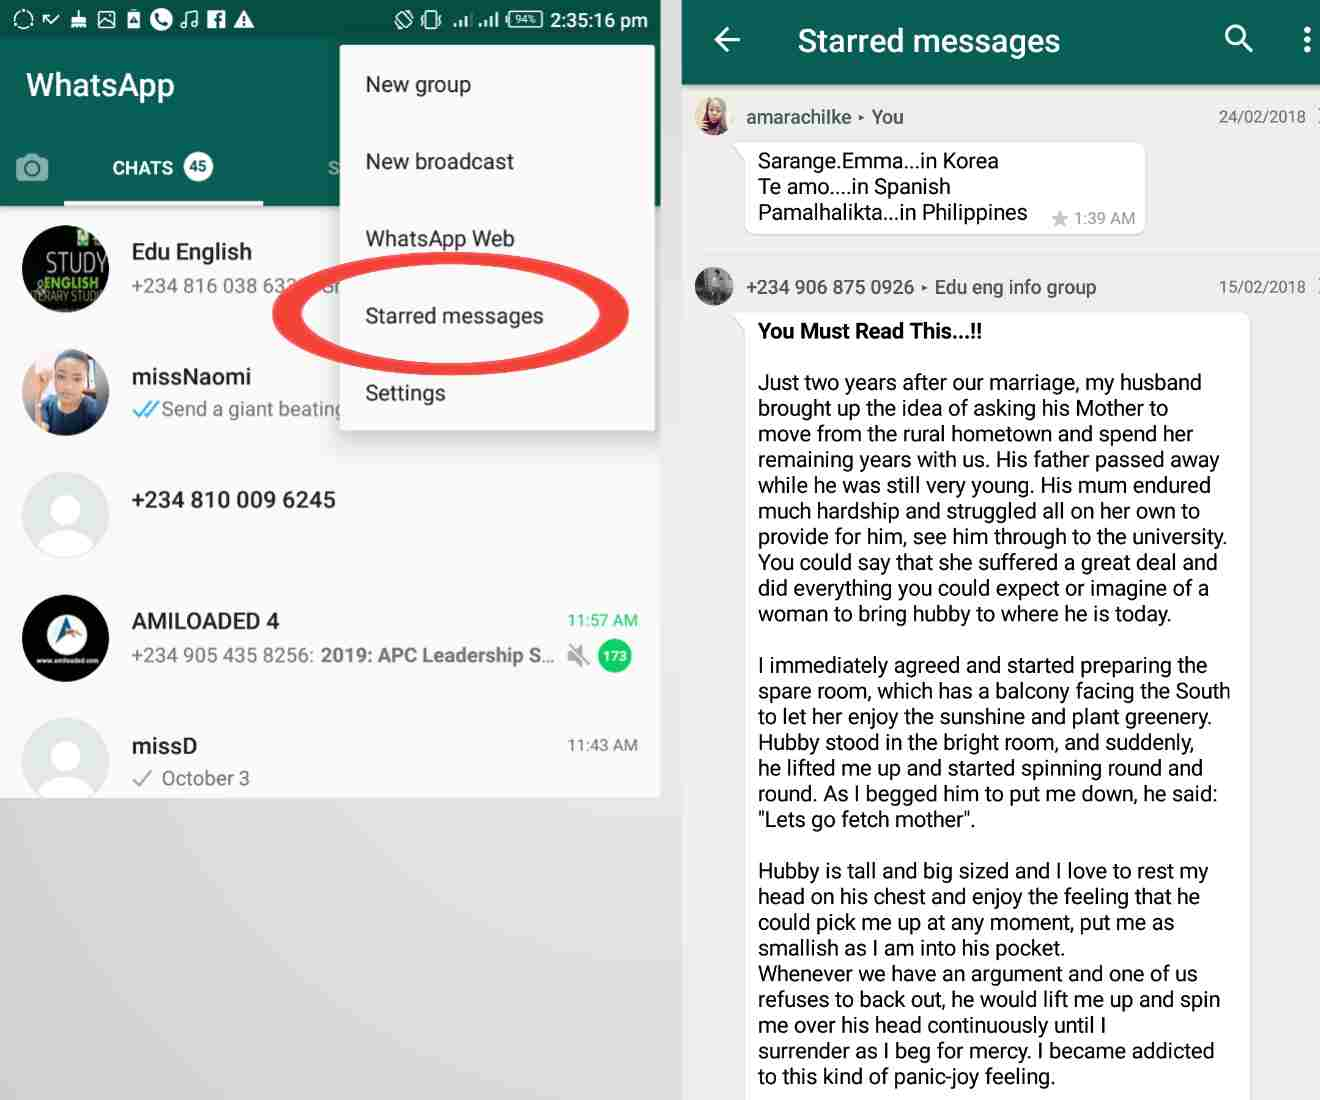 whatsapp tricks 101 - How To see all starred messages on WhatsApp